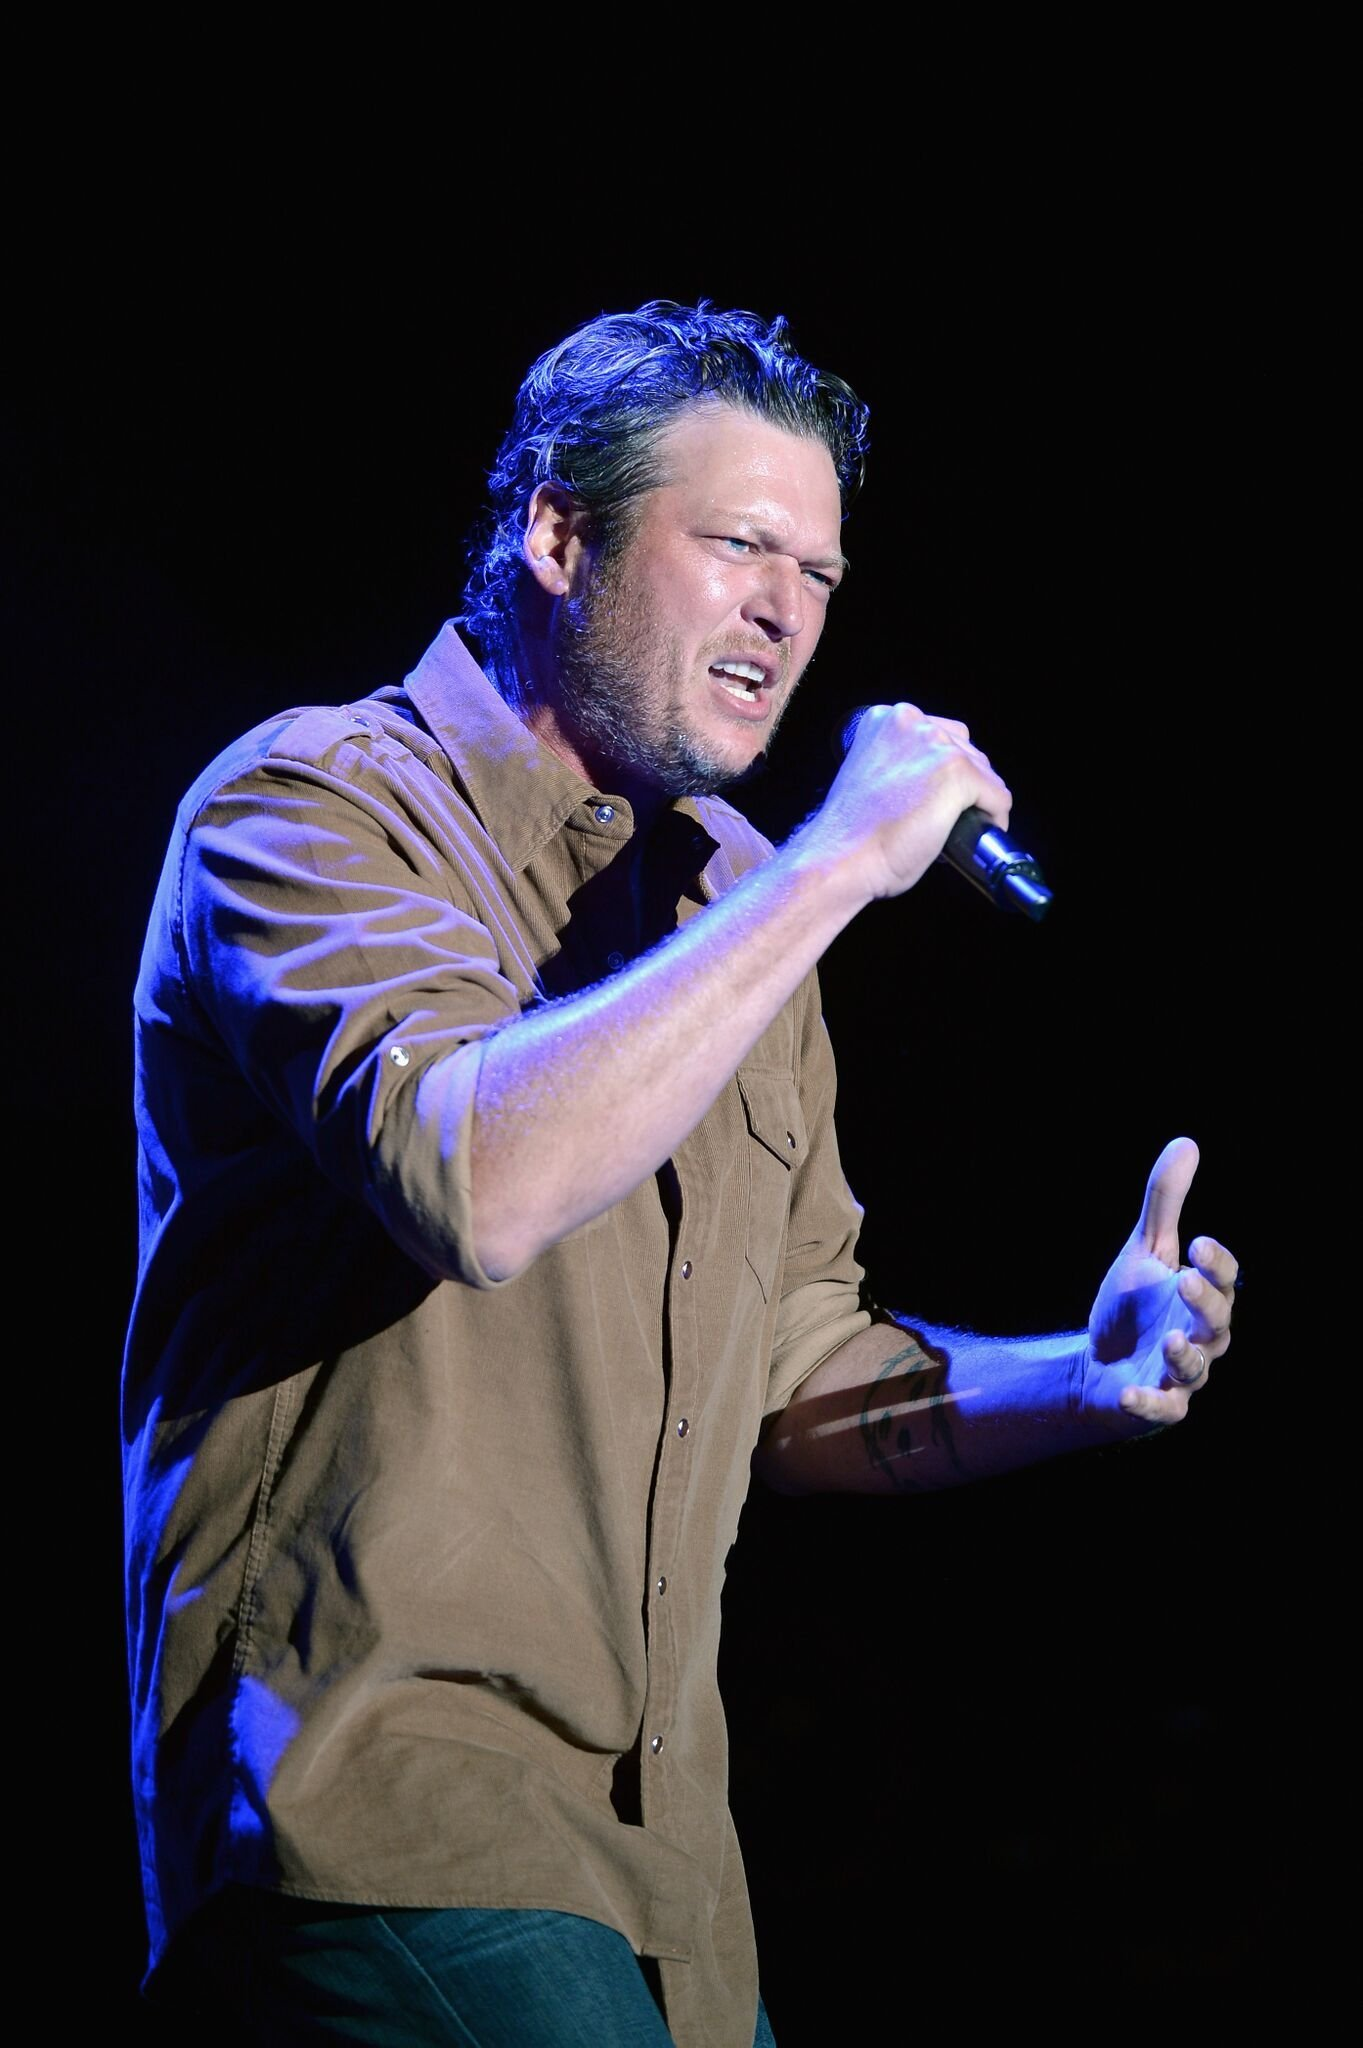 Blake Shelton performs onstage during day 1 of the Big Barrel Country Music Festival | Getty Images / Global Images Ukraine